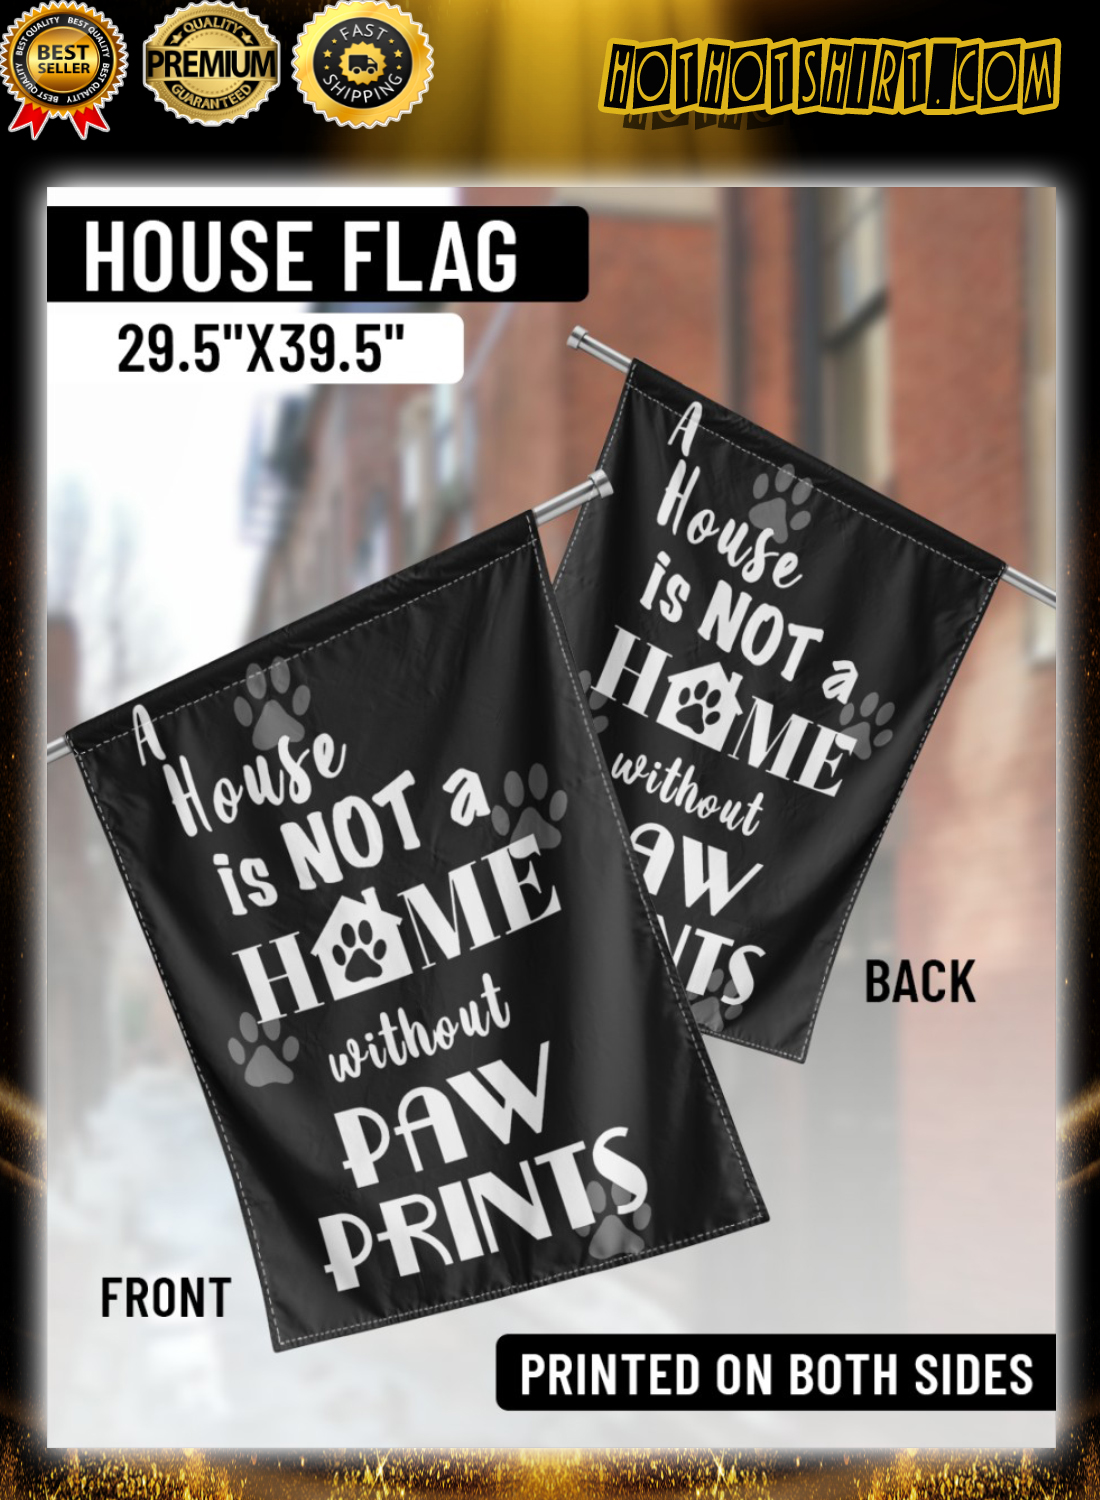 A house is not a home without paw prints flag